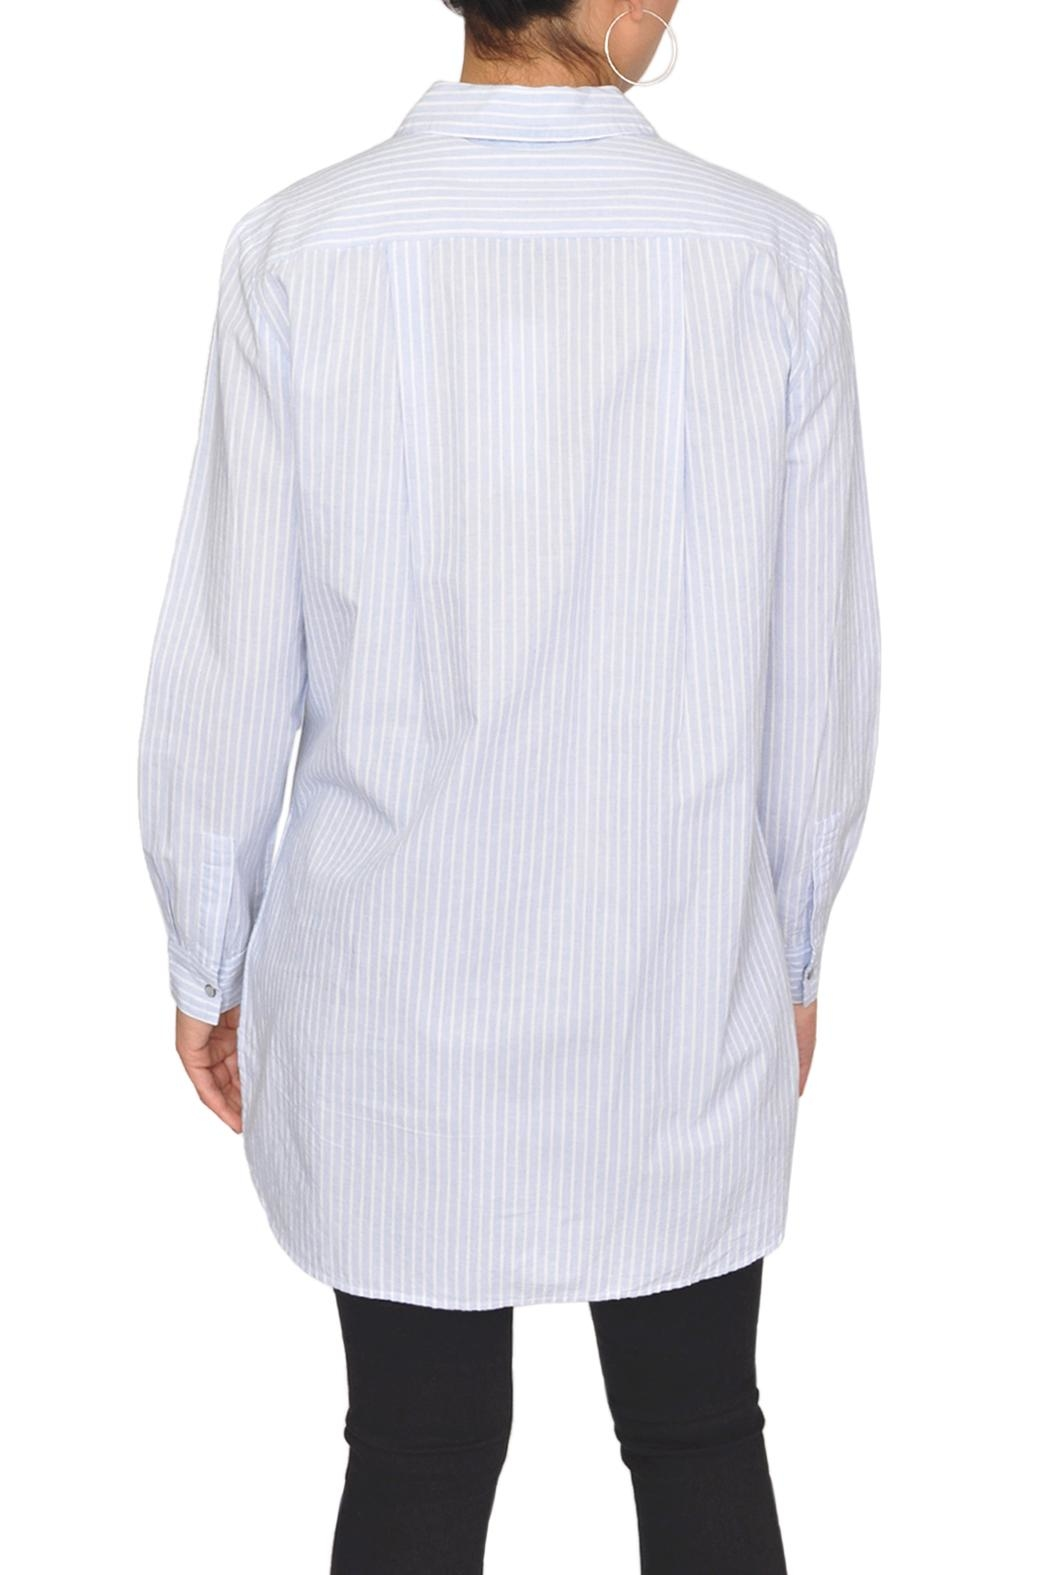 Designers Society Oxford Stripe Shirt - Side Cropped Image